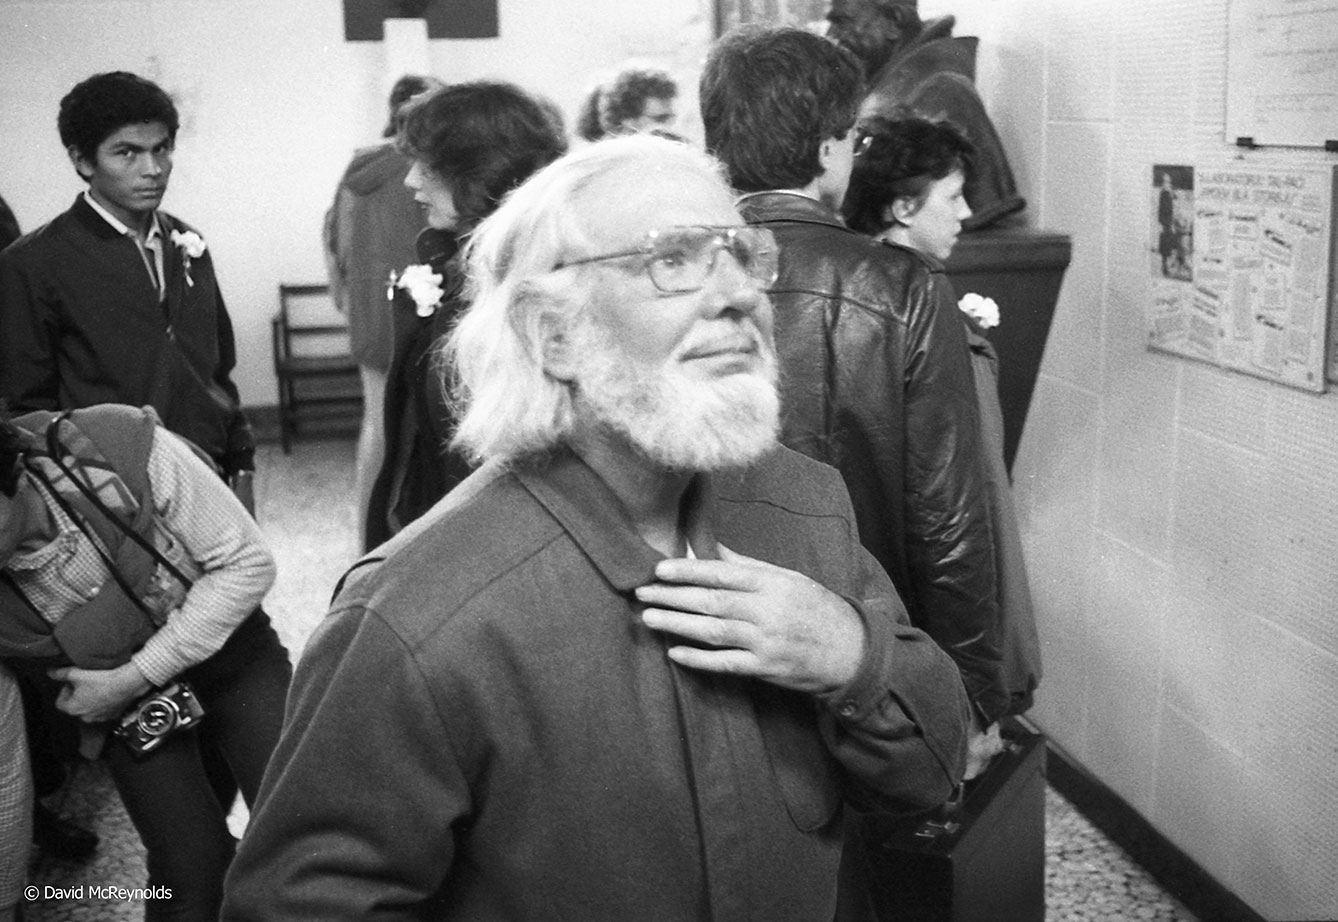 Nicaraguan Catholic priest, poet and politician Ernesto Cardenal, Malta, 1984